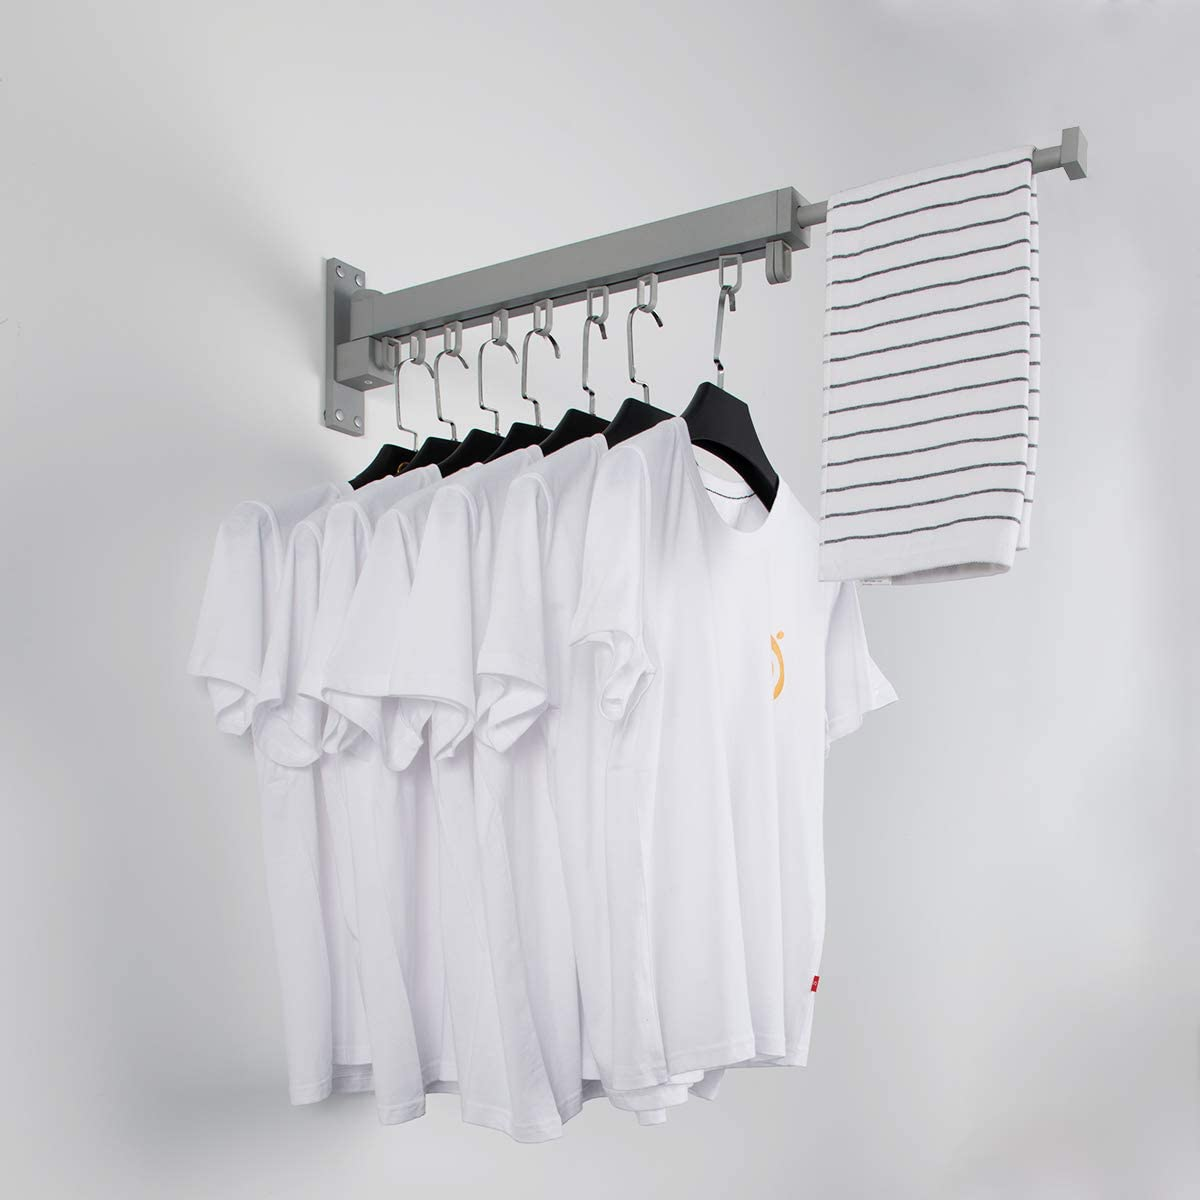 BENOSS Wall Mounted Clothes Drying Rack, Retractable Laundry Drying Rack Space Saver Hangers, Easy to Install, for Balcony, Laundry, Bathroom and Bedroom (Silver-Short)